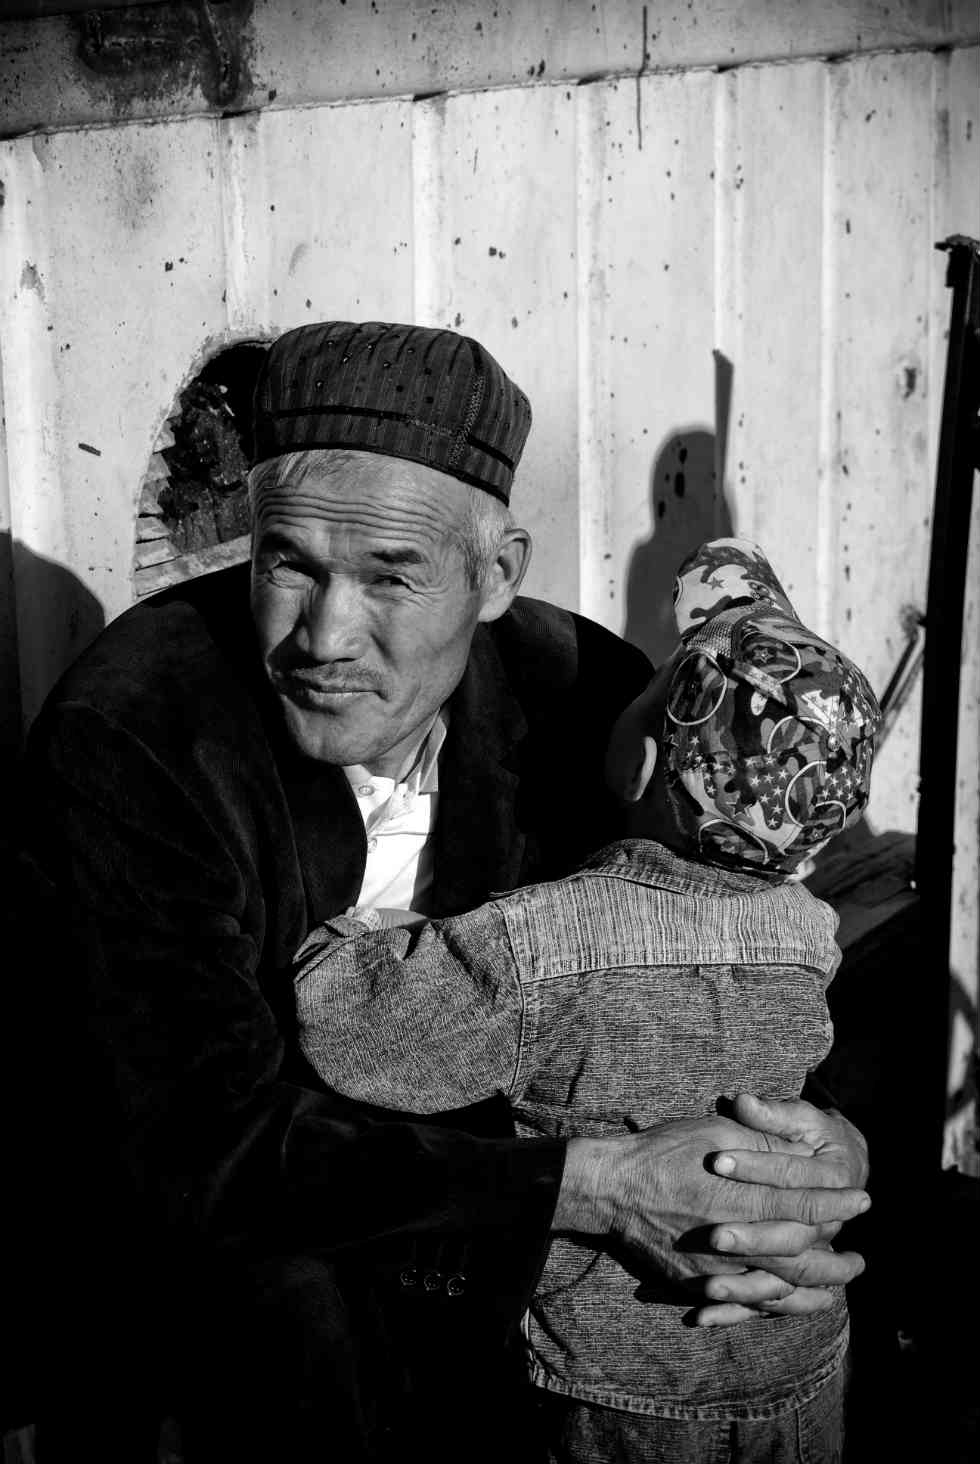 Uzbekistan is unfortunately infamous for its government's human rights violations, but the humanity of individuals remains as strong as anywhere in the world. Achka-Kul Lake, near Urgench, on September 25, 2010. (Tyler Palma)